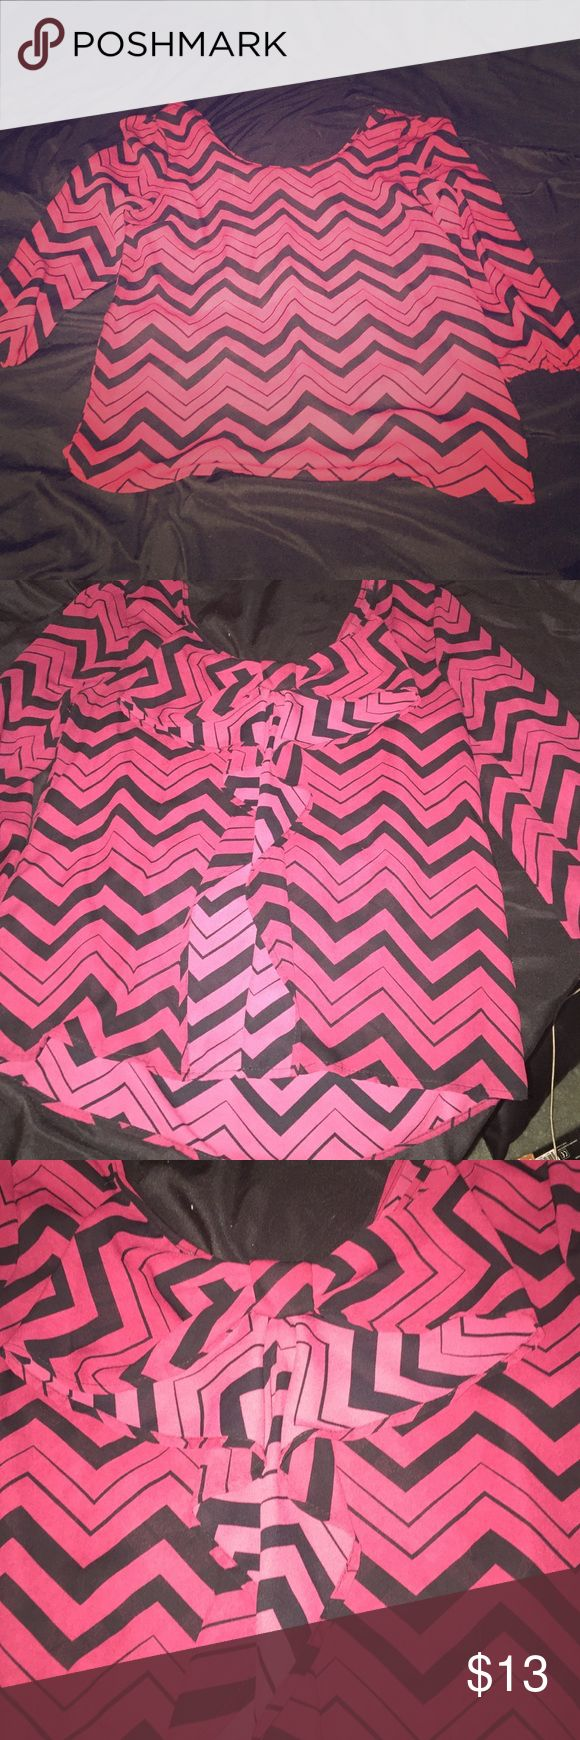 Black and red chevron blouse with bow in back Black and red chevron blouse with bow in back. Charlotte Russe size medium. Never worn! Very cute. Sleeves have elastic bands. Charlotte Russe Tops Blouses